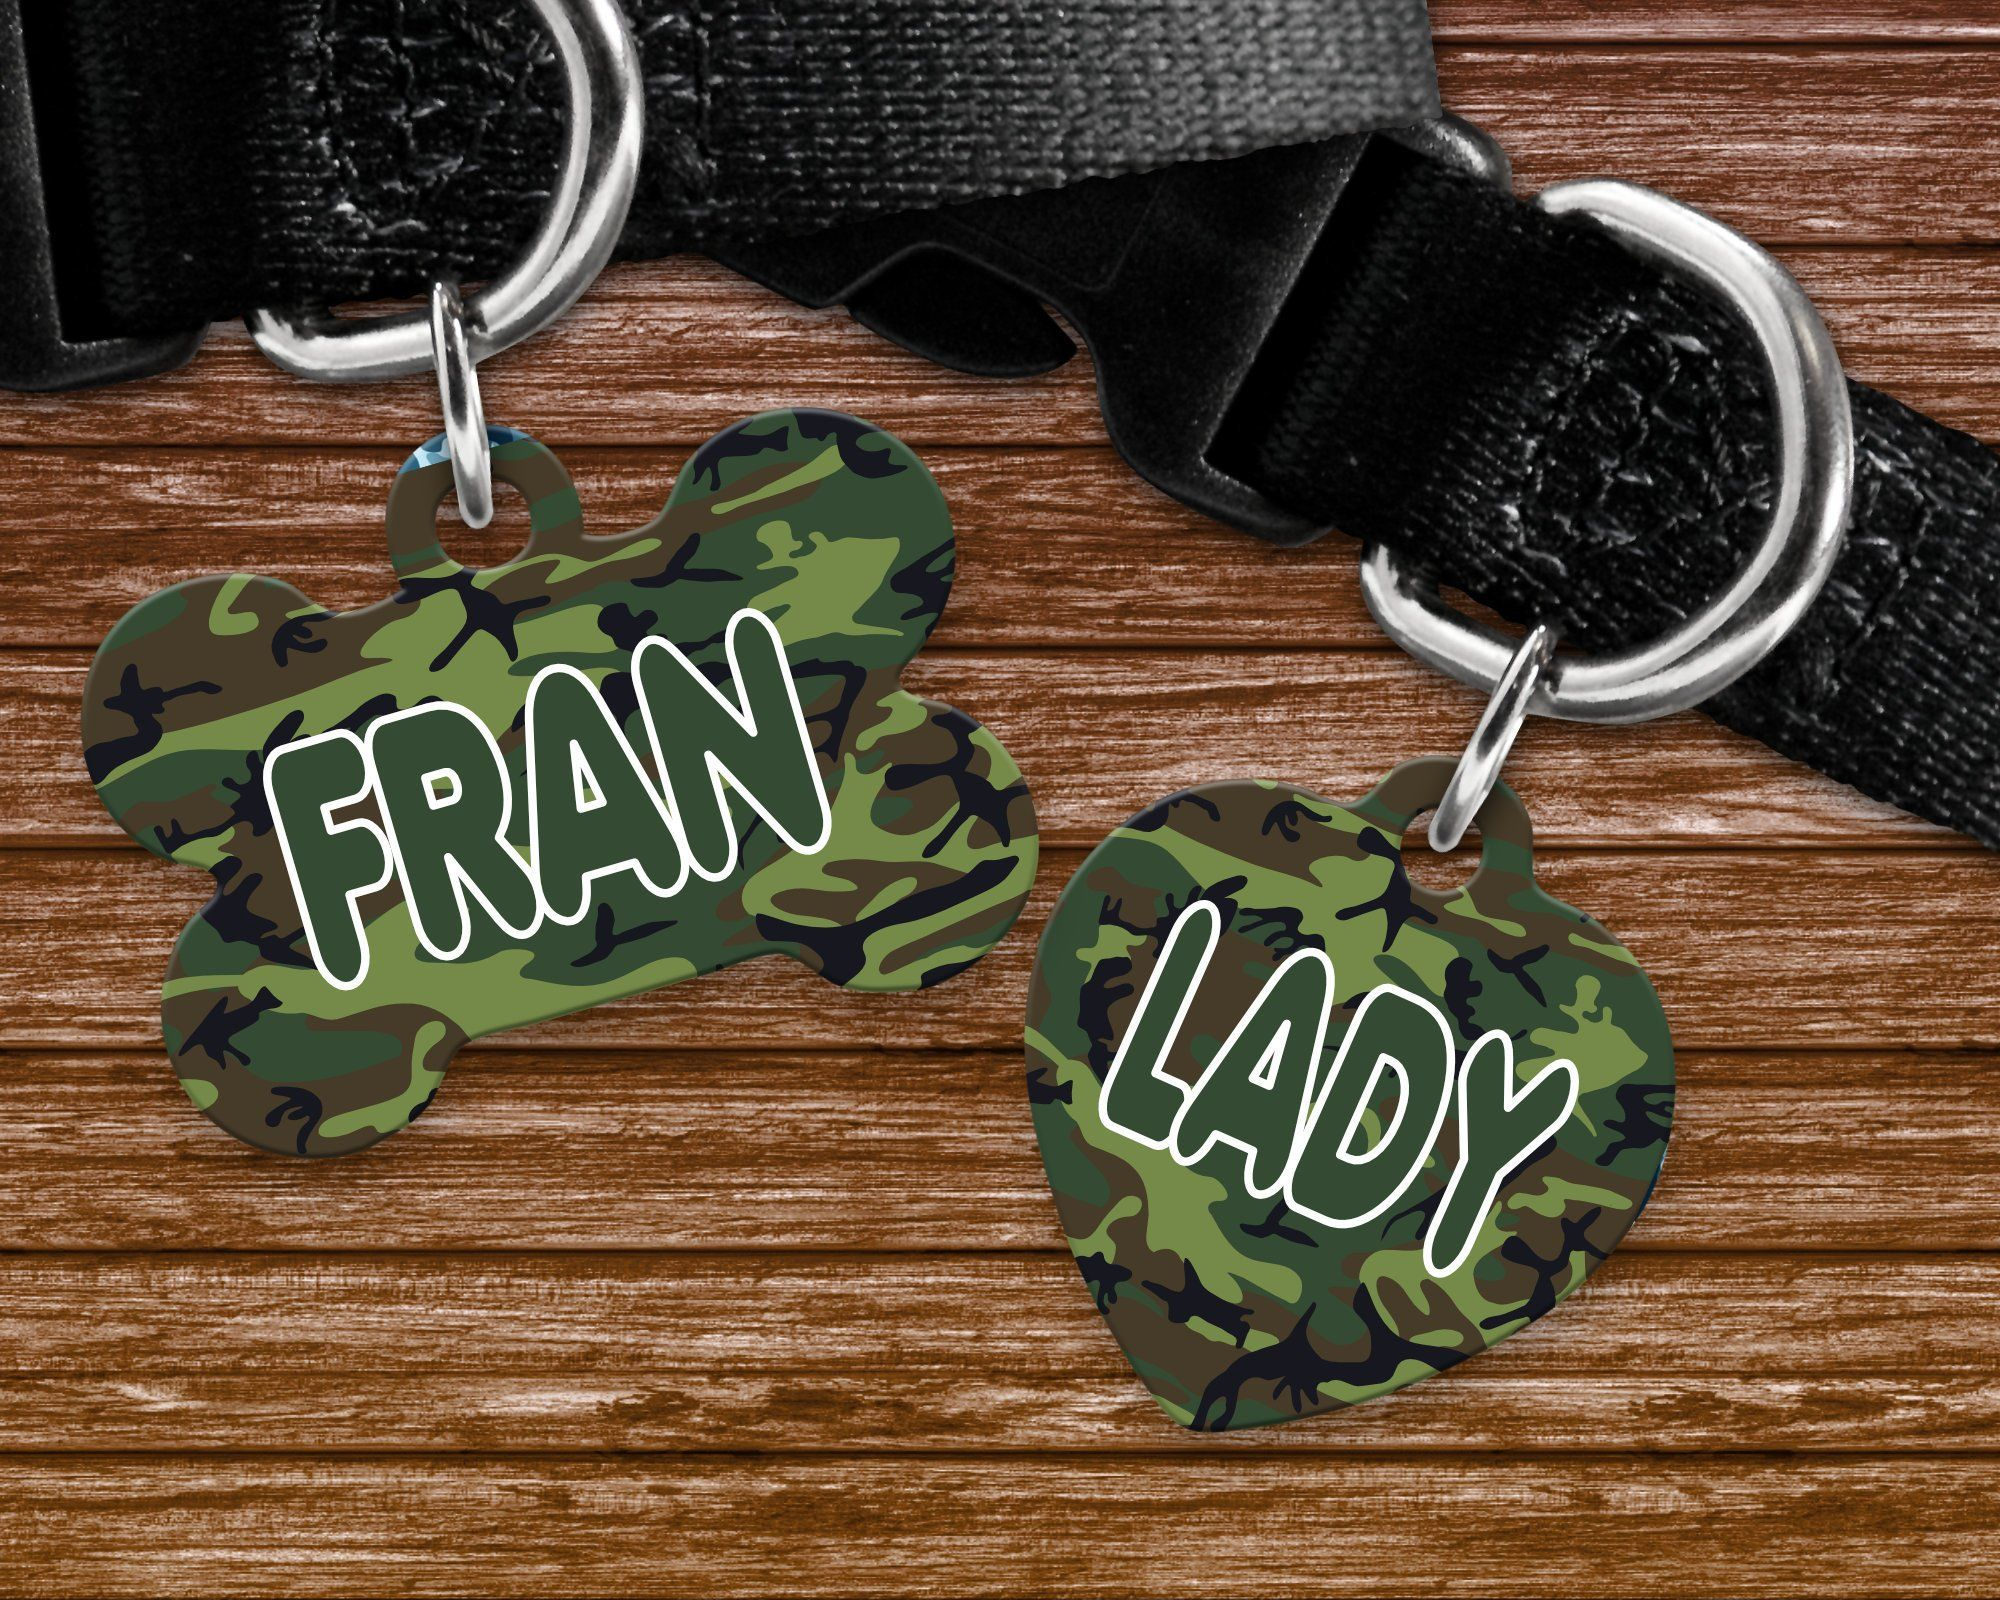 Green camo, camouflage background pet tag, dog badge for collar  #art #design #giftguide #handmade #designtimegnc #gifting #gift #gifts #giftideas #birthday